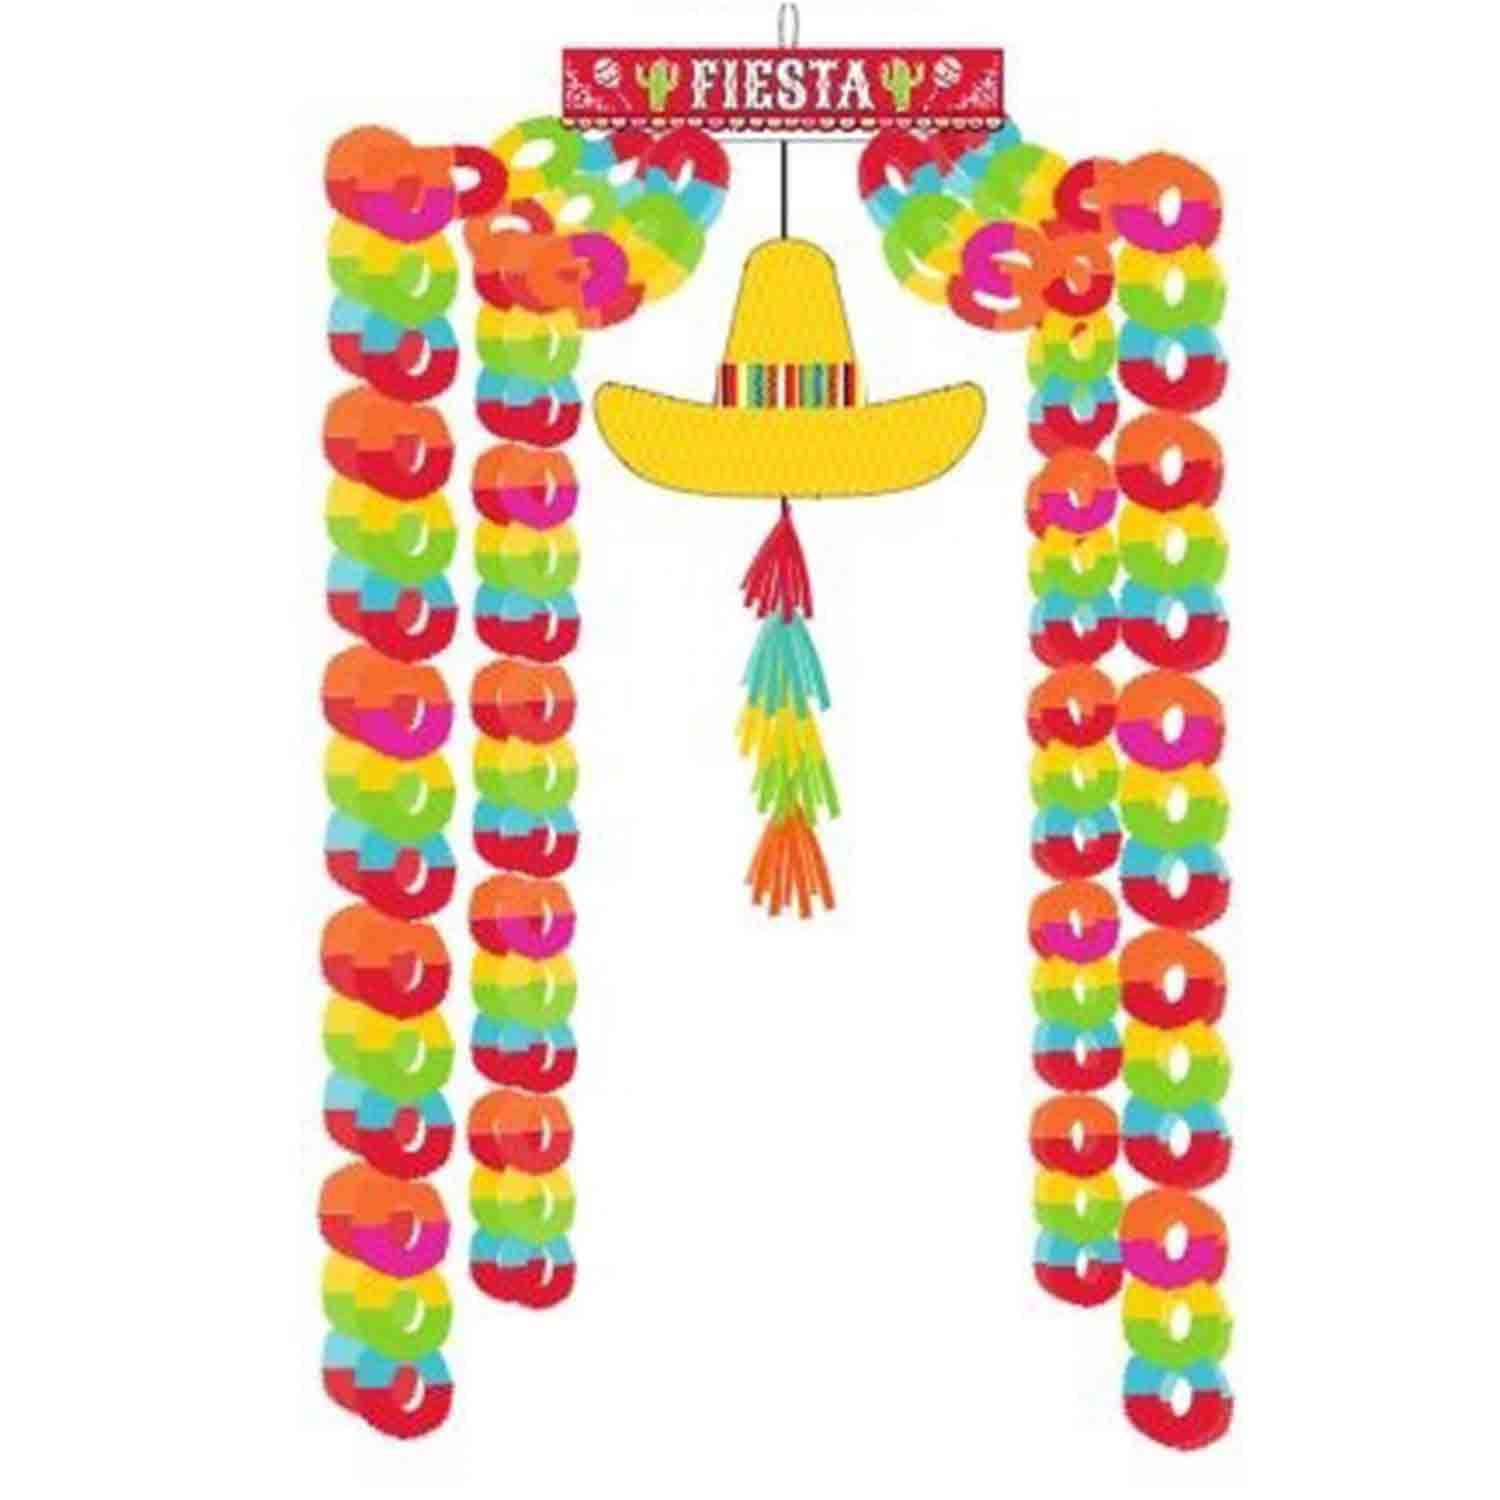 Fiesta All-In-One Decorations Kit